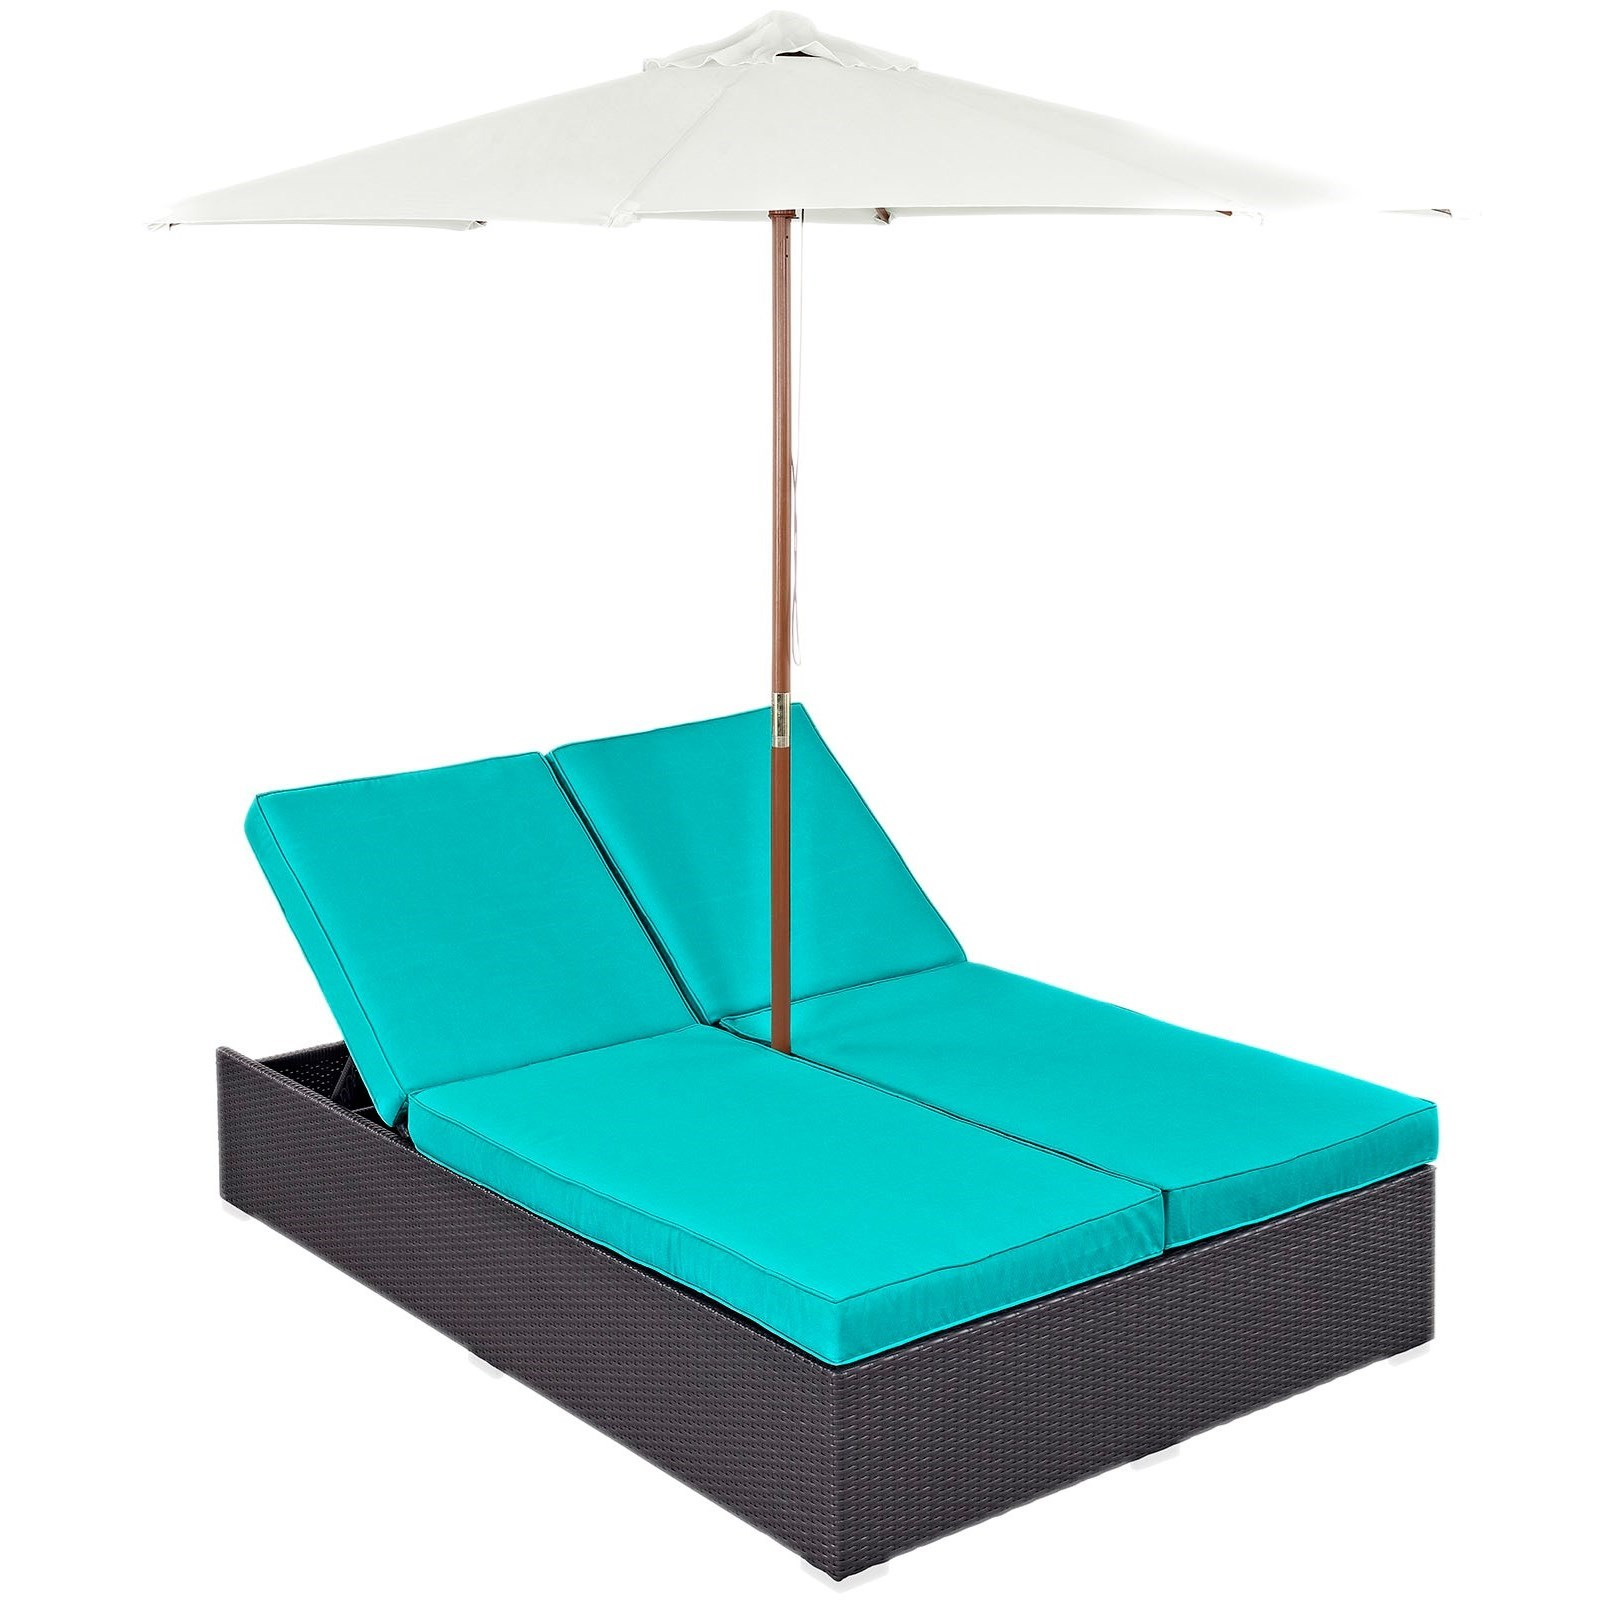 Convene Outdoor Patio Chaise by Modway at Value City Furniture